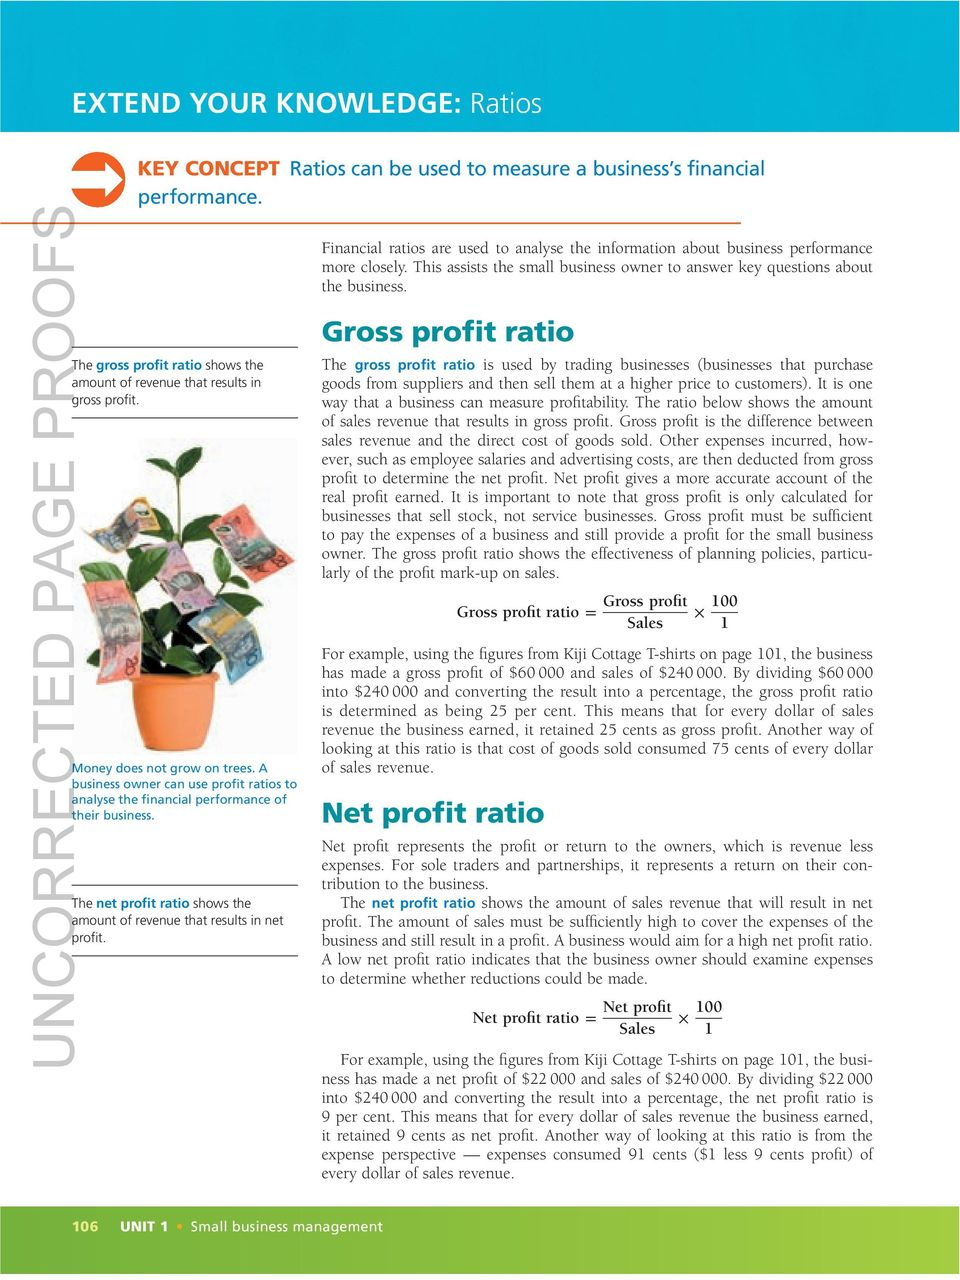 gross profit ratio The gross profit ratio shows the amount of revenue that results in gross profit. Gross profit ratio = Money does not grow on trees.